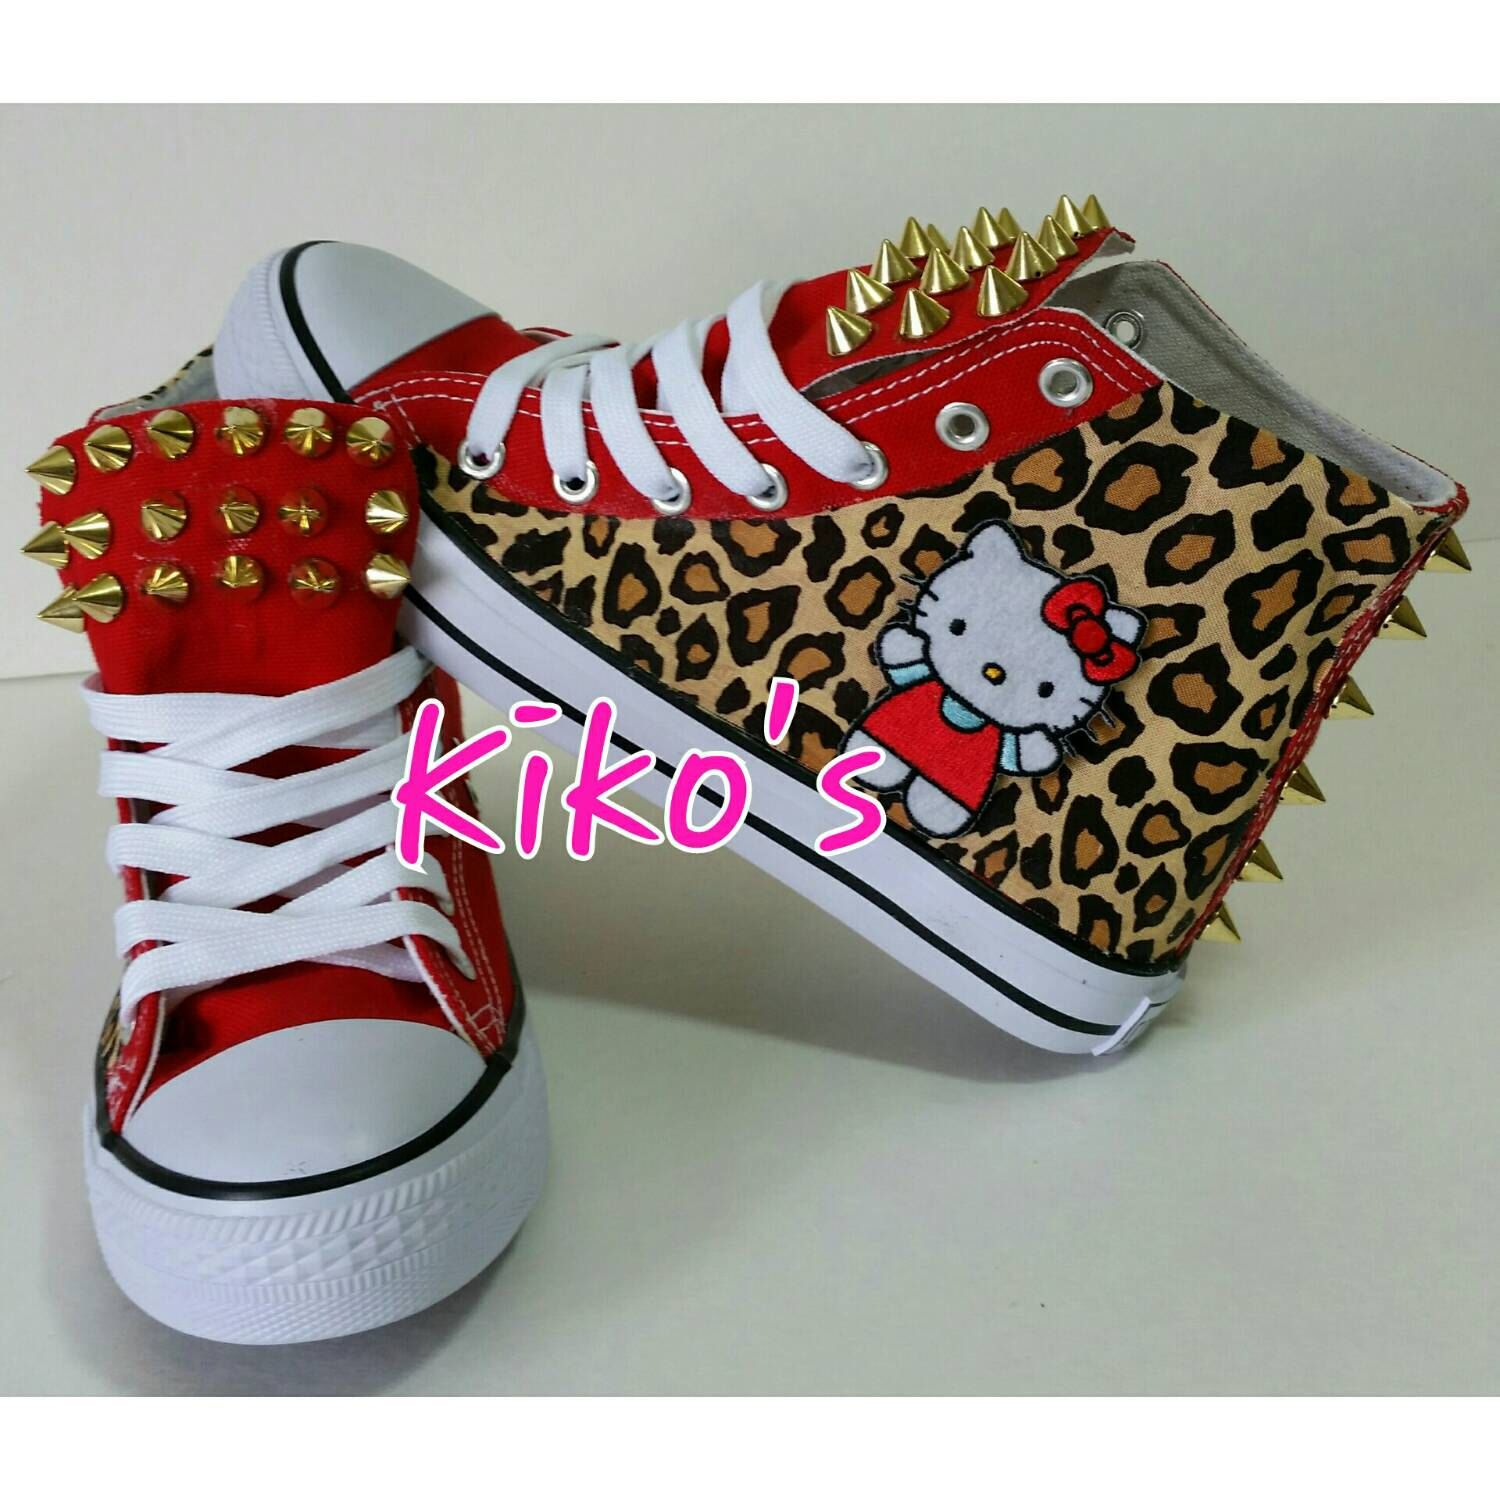 Hello Kitty Leopard Black or Red Converse with gold fashion chains and studs Women sizes by KikosDesigns on Etsy https://www.etsy.com/listing/191888942/hello-kitty-leopard-black-or-red